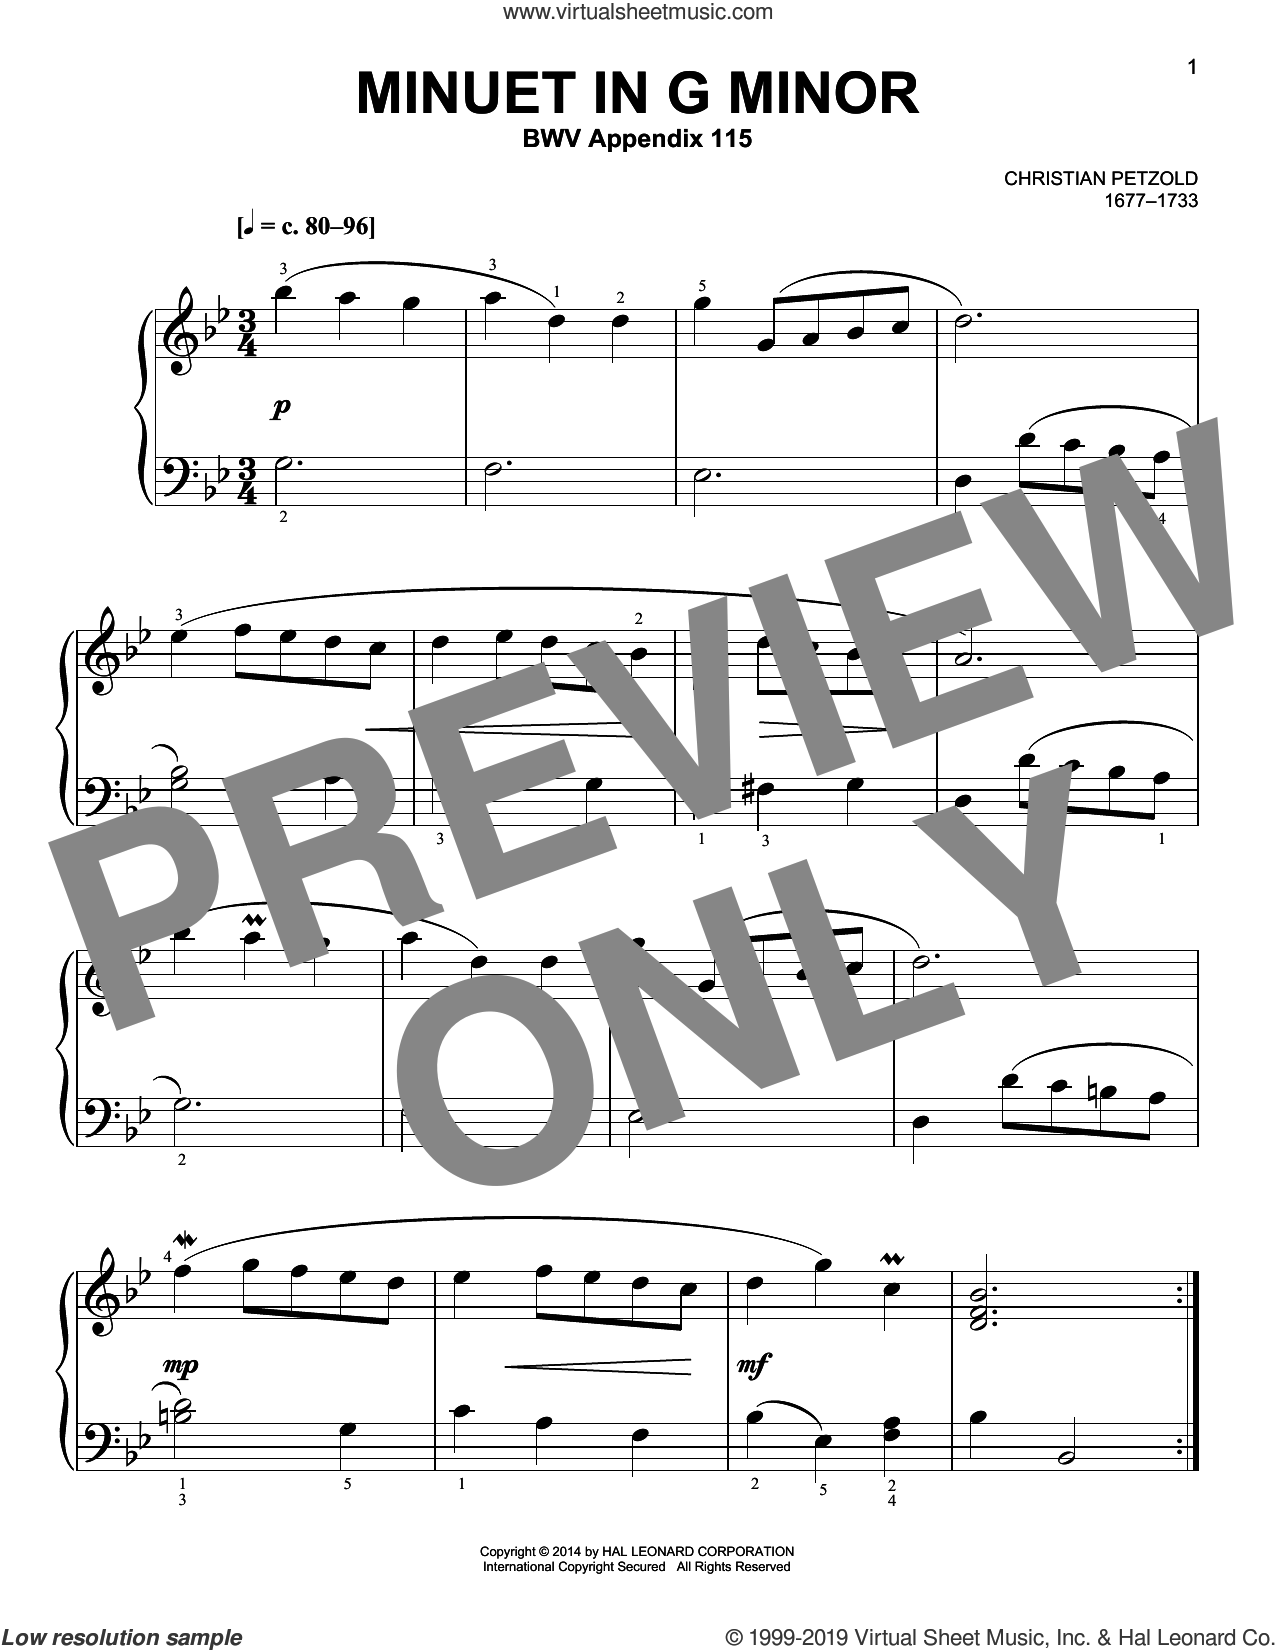 Minuet In G Minor, BWV Anh. 115 sheet music for piano solo by Christian Petzold, classical score, easy skill level